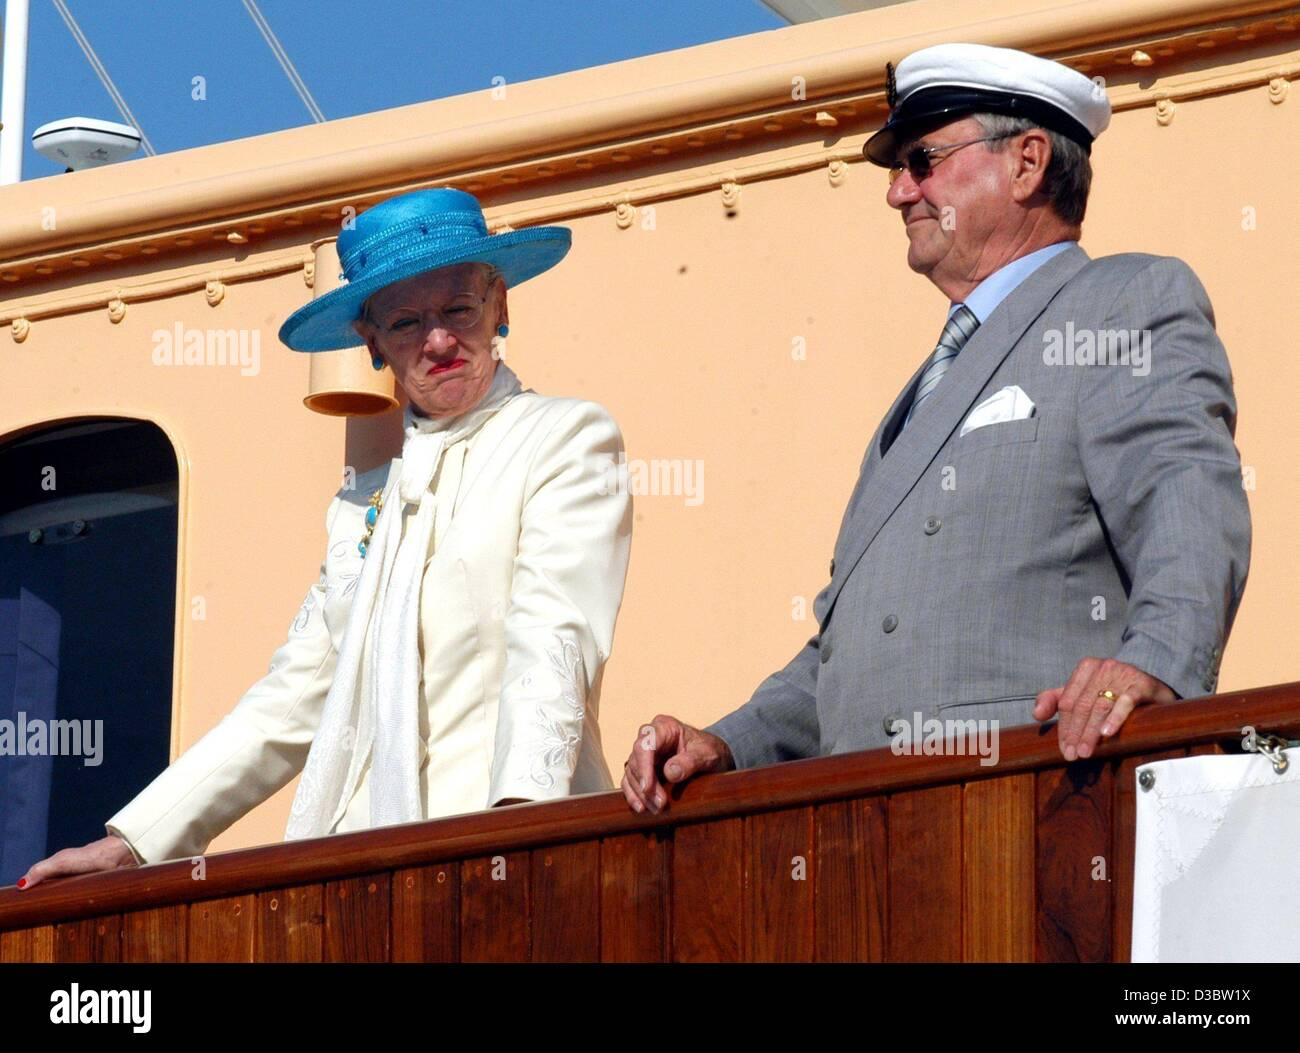 (dpa) - Queen Margrethe II of Denmark and her husband Prince Henrik stand on the deck of the royal yacht Dannebrog - Stock Image